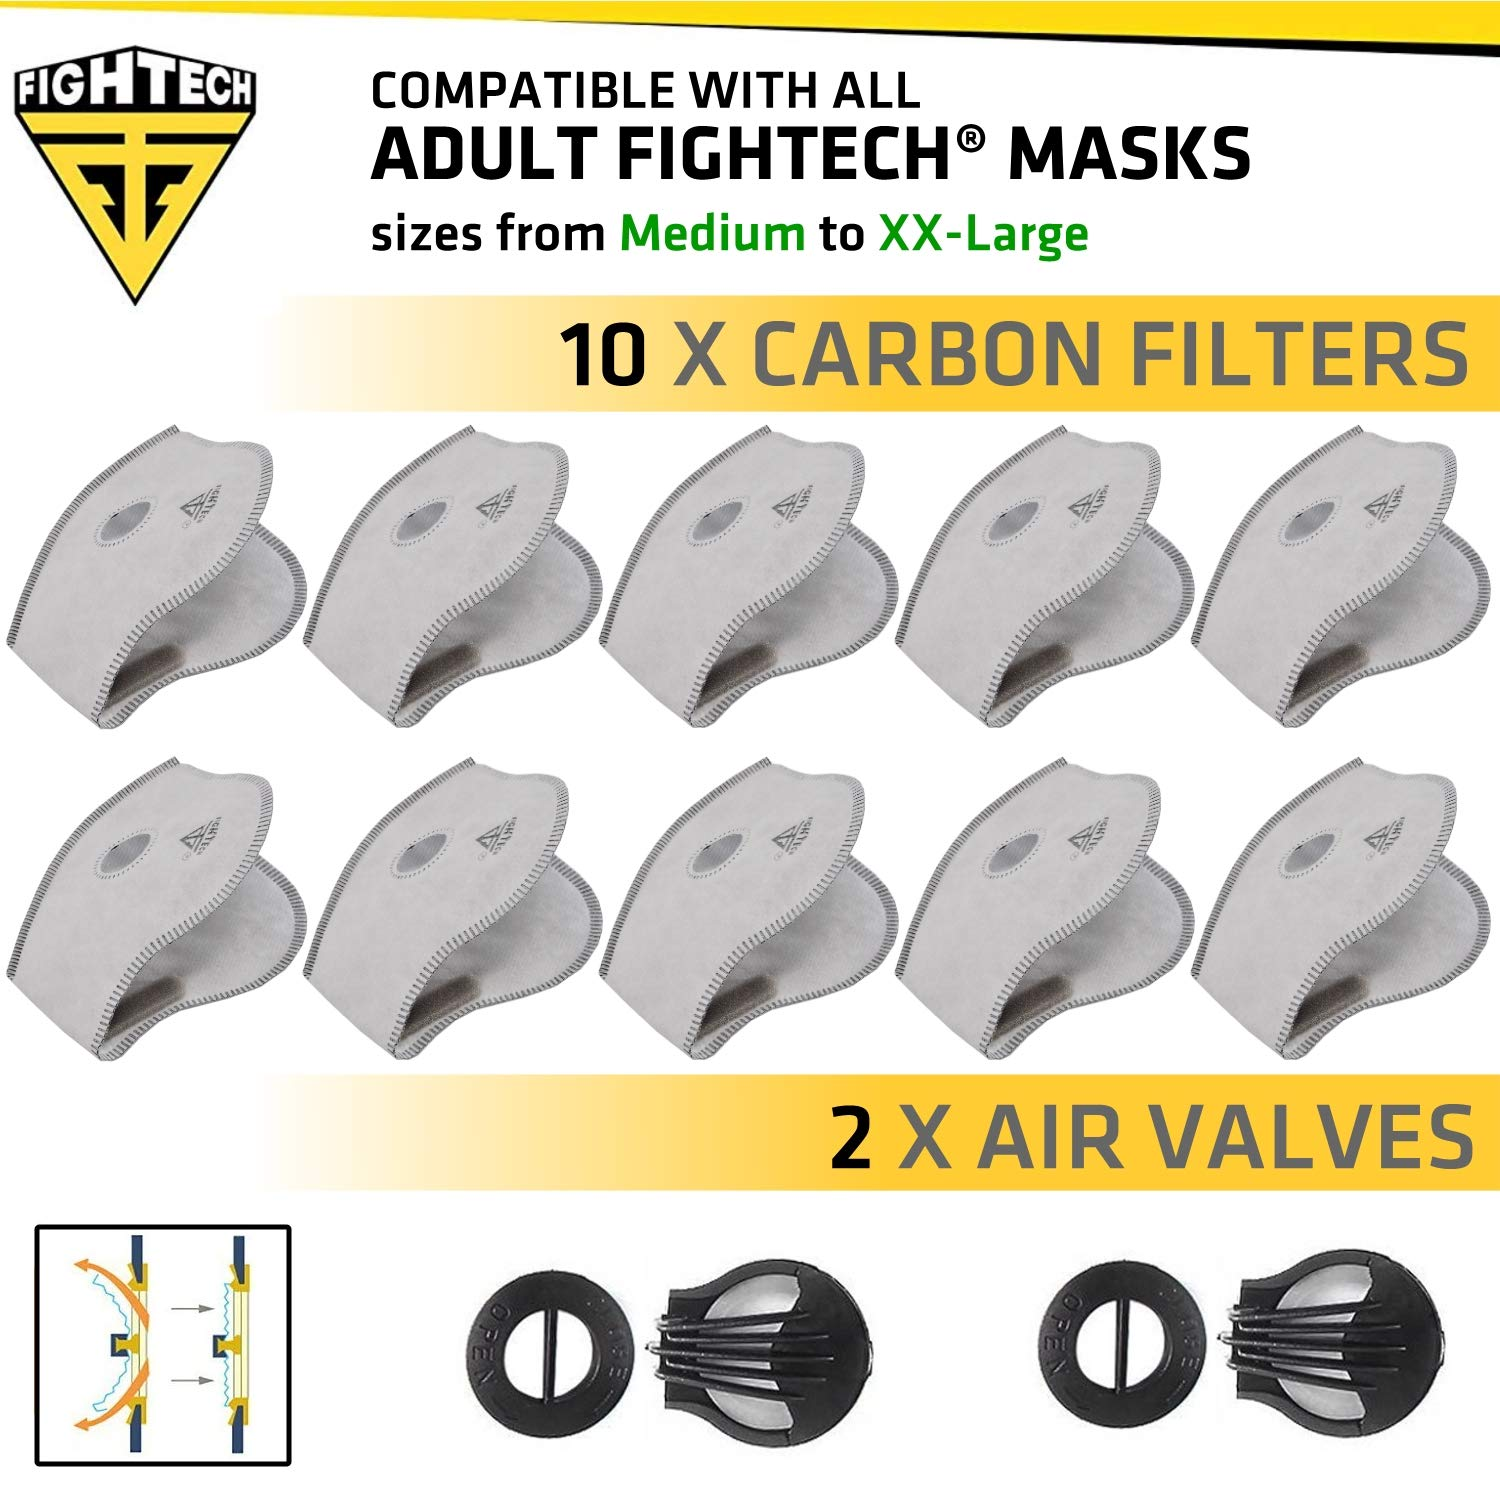 10 Carbon N99 PM2.5 Filters and 2 Valves for Fightech Dust Mask   Pack of Air Filters for Face Mask for Dust   With Safety Goggles Fogging Up Protection (ADULT) by FIGHTECH